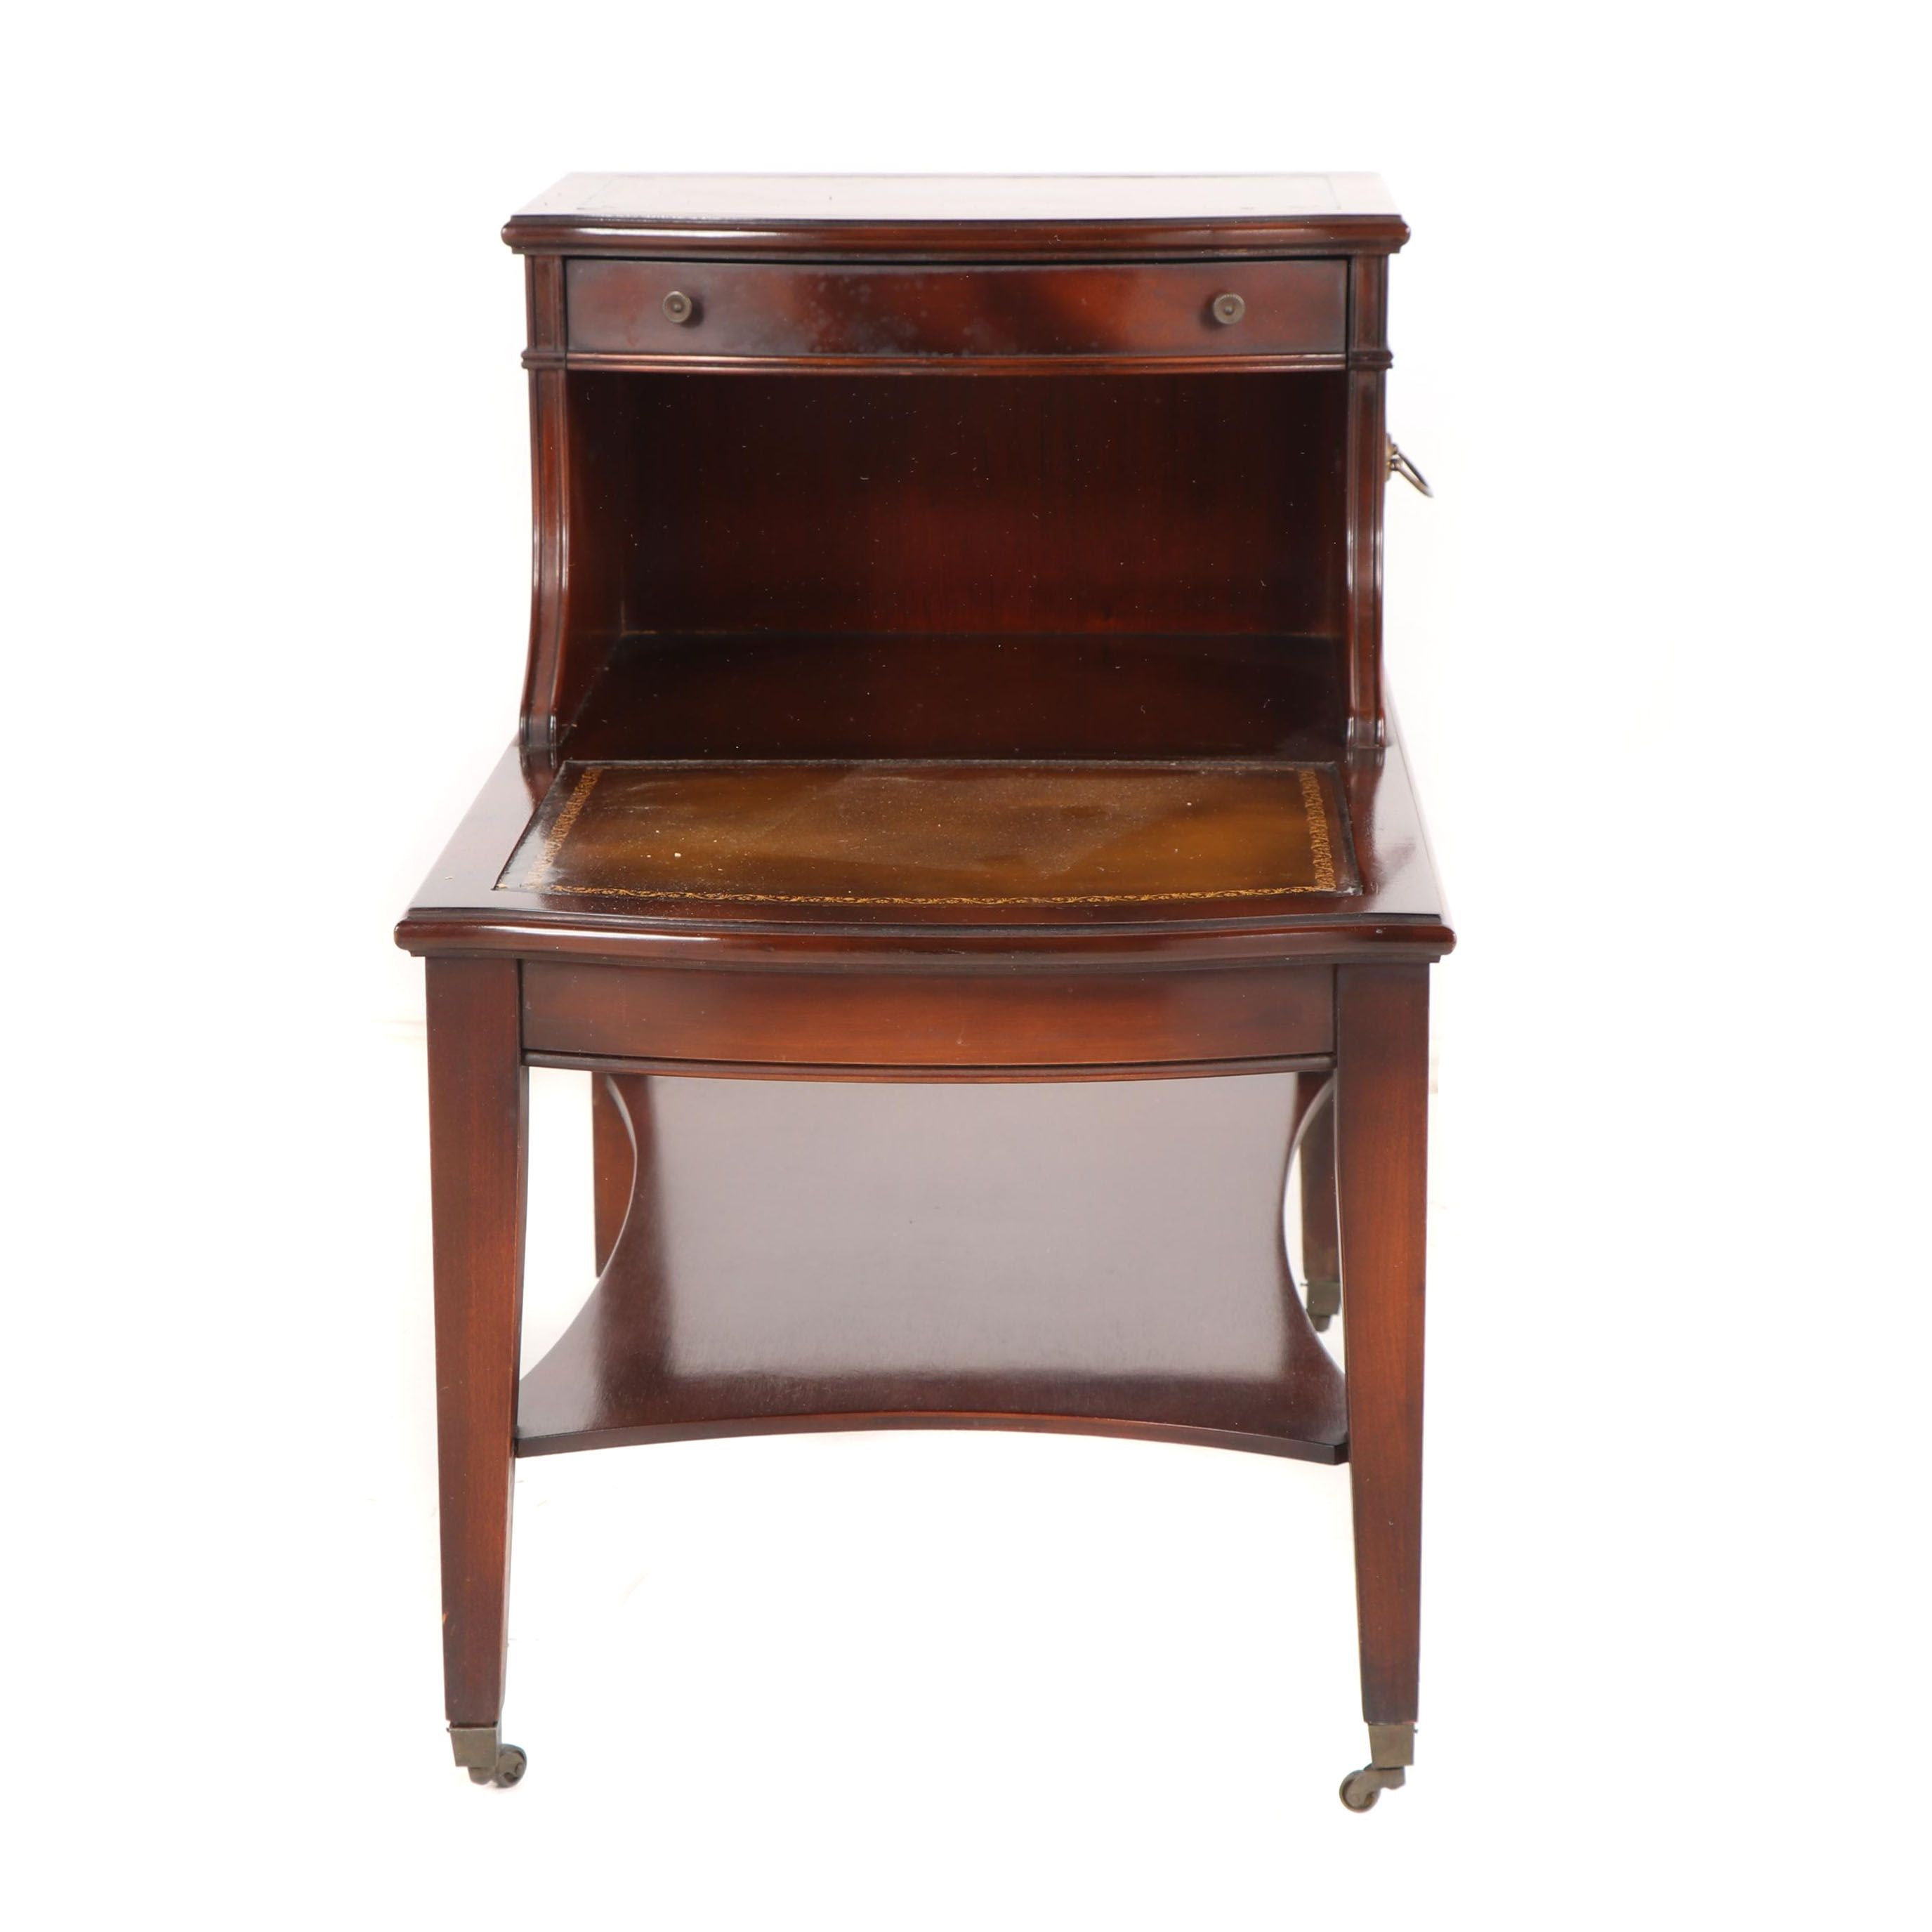 Federal Style Mahogany and Leather Step-Back End Table, Mid-20th Century